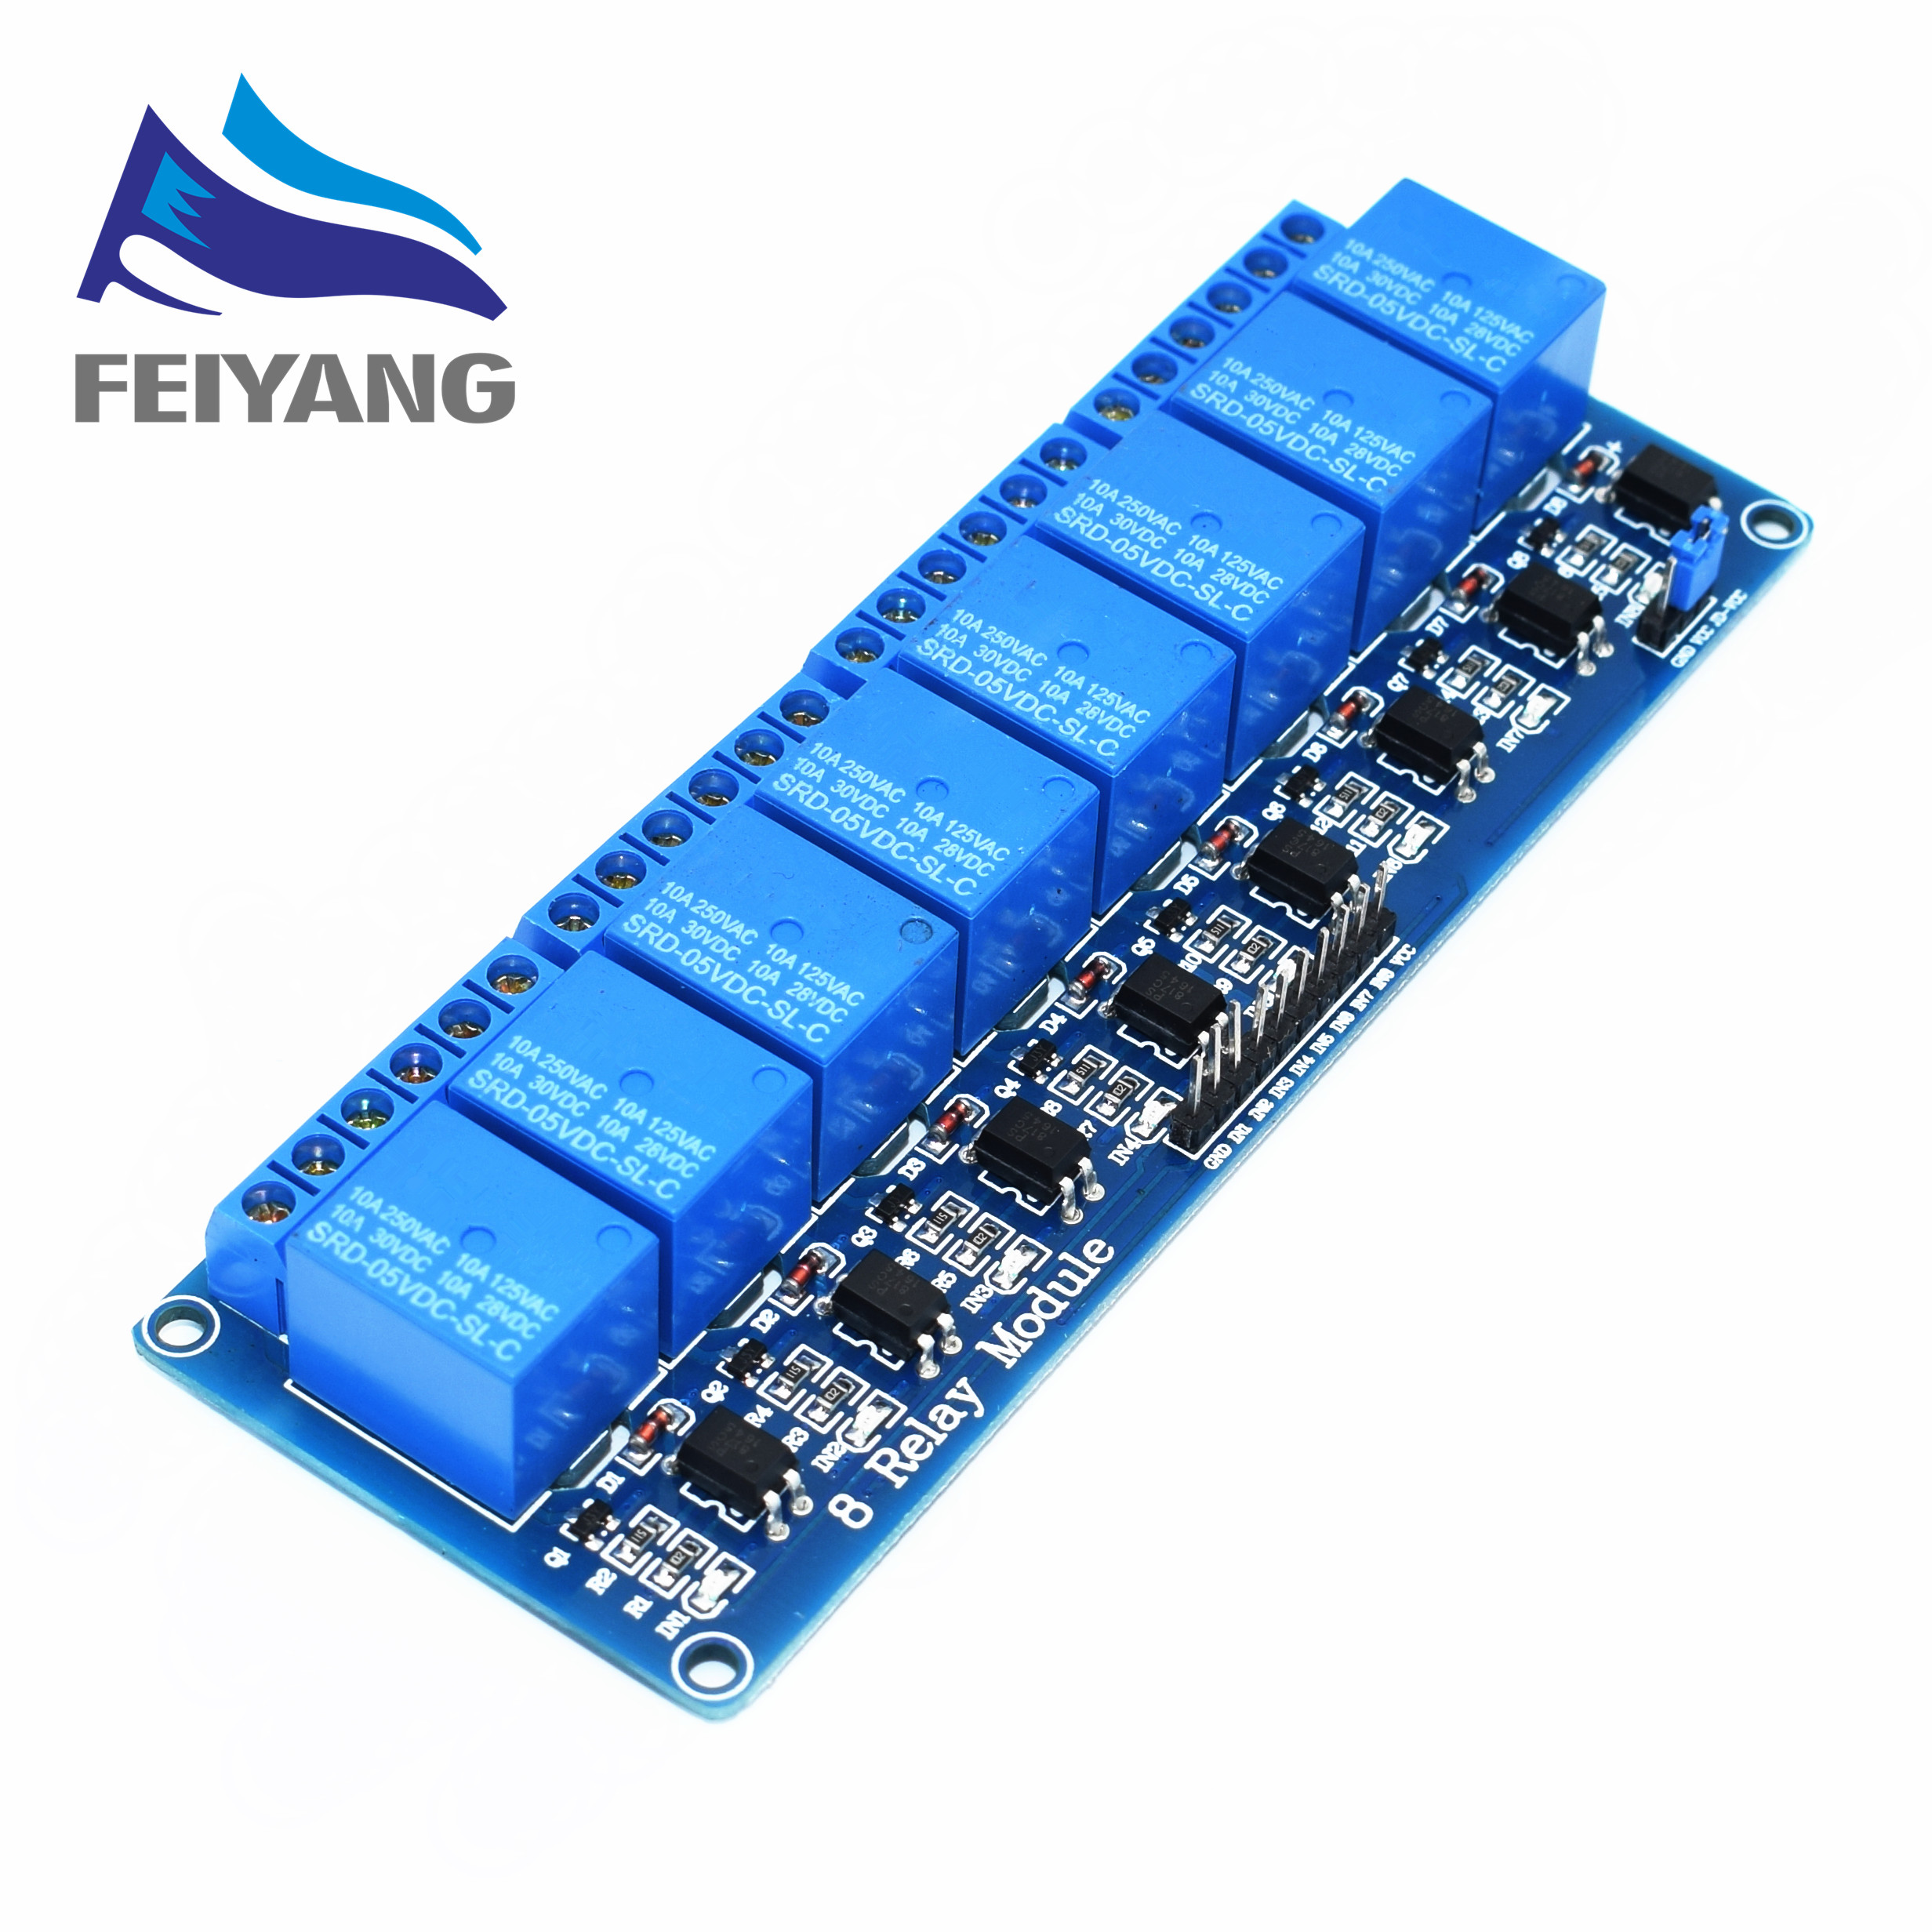 10PCS SAMIORE ROBOT 5V 8 Channel Relay Module Board PIC AVR MCU DSP ARM Electronic 100% new original